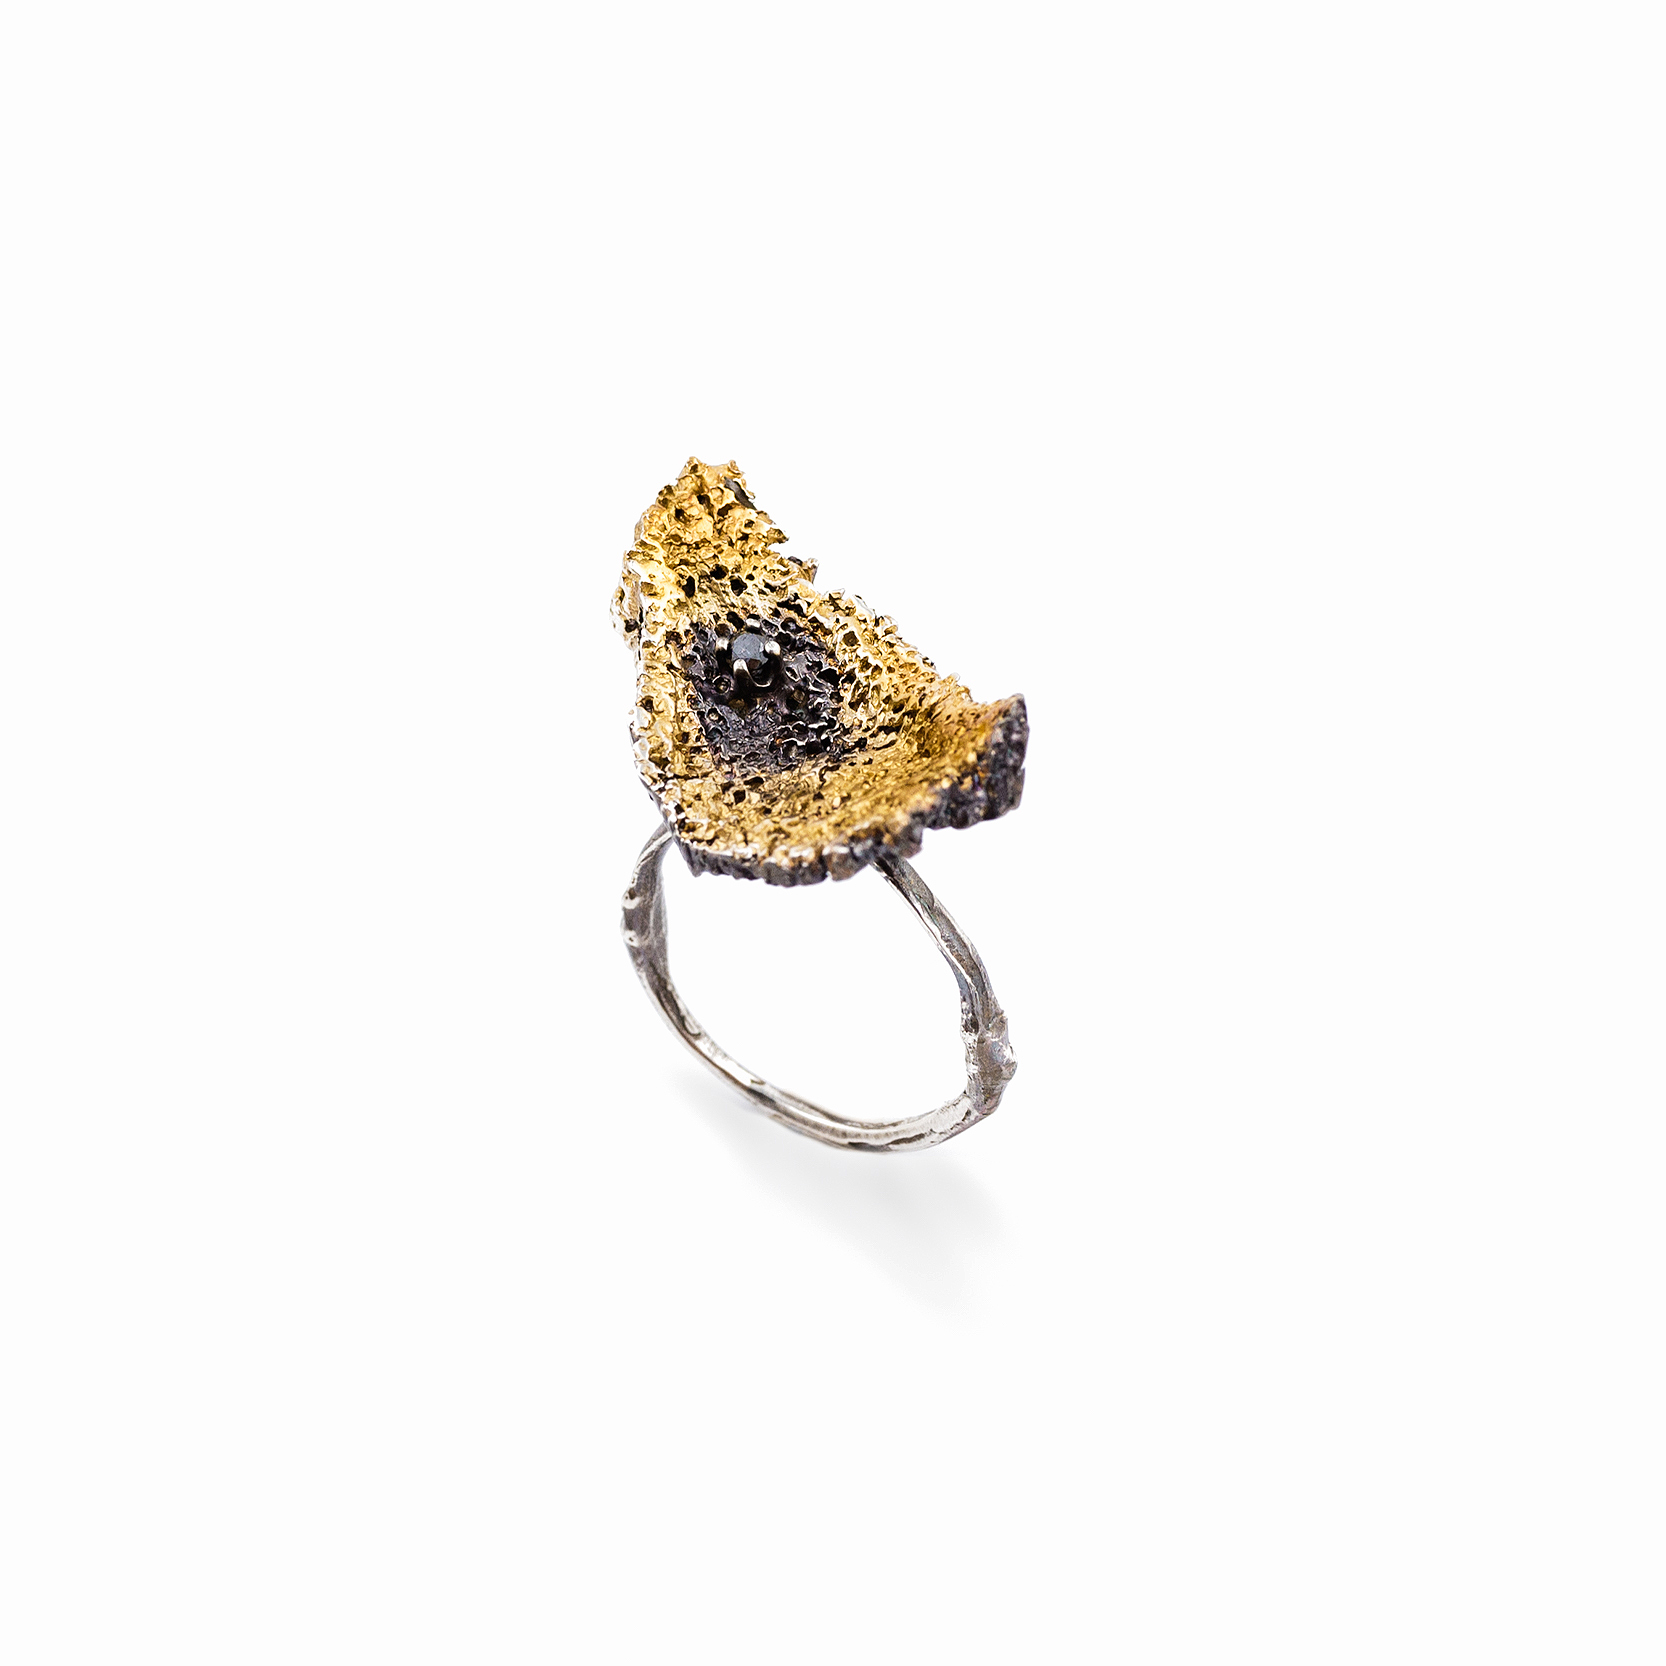 Curved Inner Island Ring   | Sterling silver, black diamond, gold vermeil, patina.